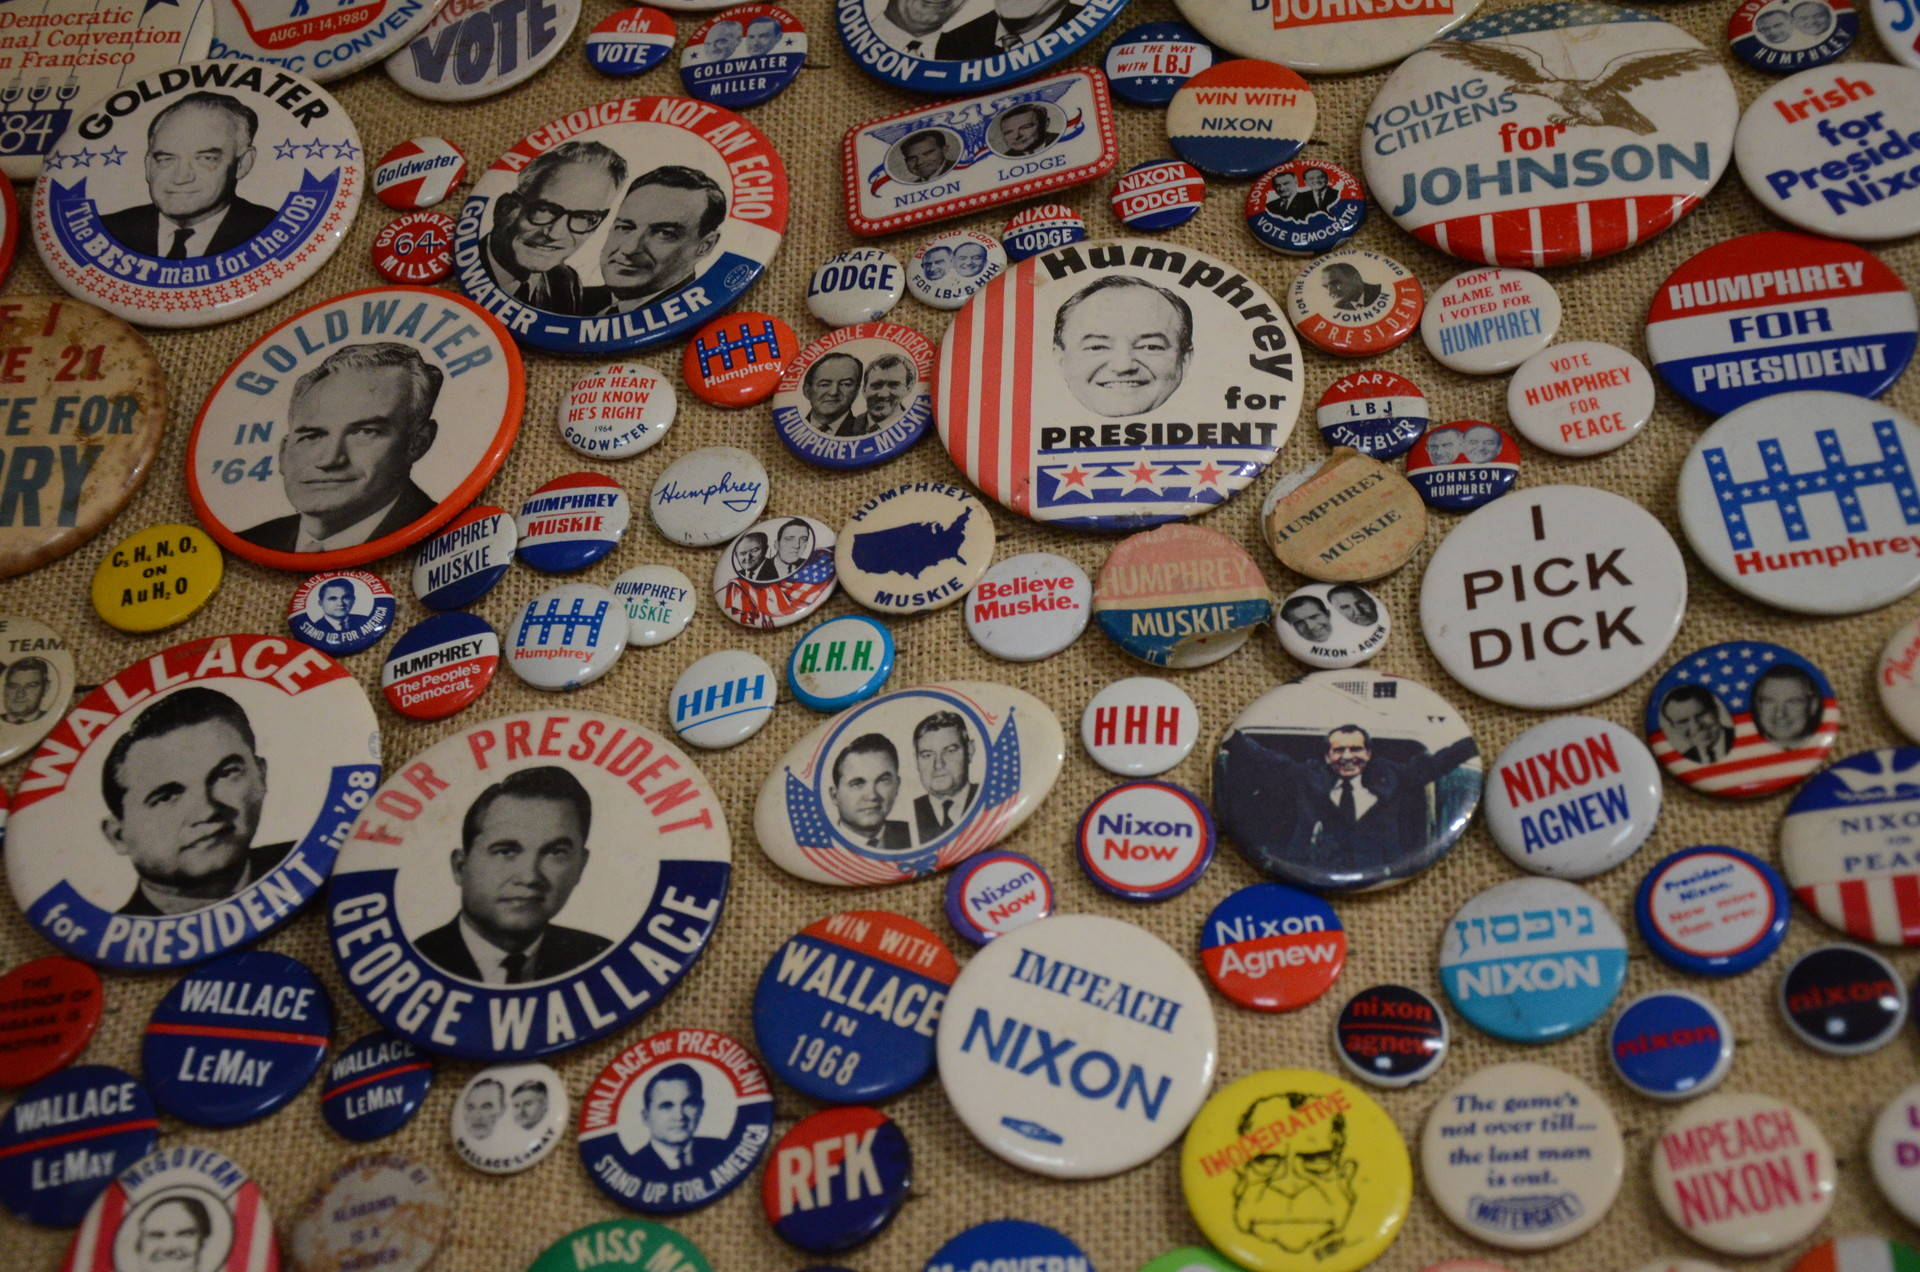 Alan Rosenzweig started collecting buttons when he was 12 years old. His collection now totals more than 240,000. Ryan Levi/KQED